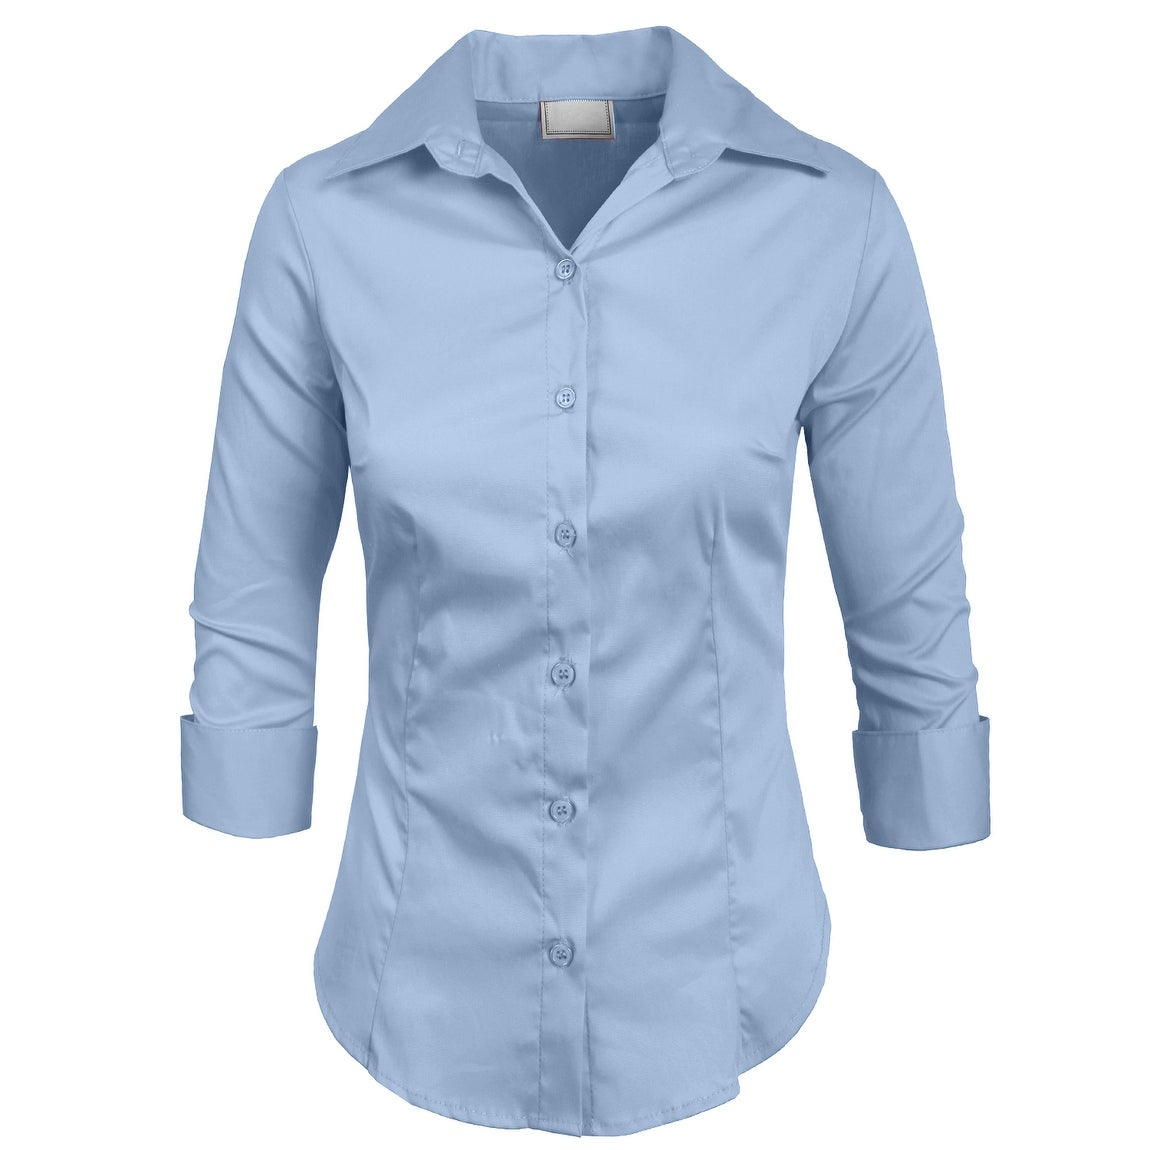 4d49a695 Buy 3/4 Sleeve Shirts Online at Overstock | Our Best Tops Deals